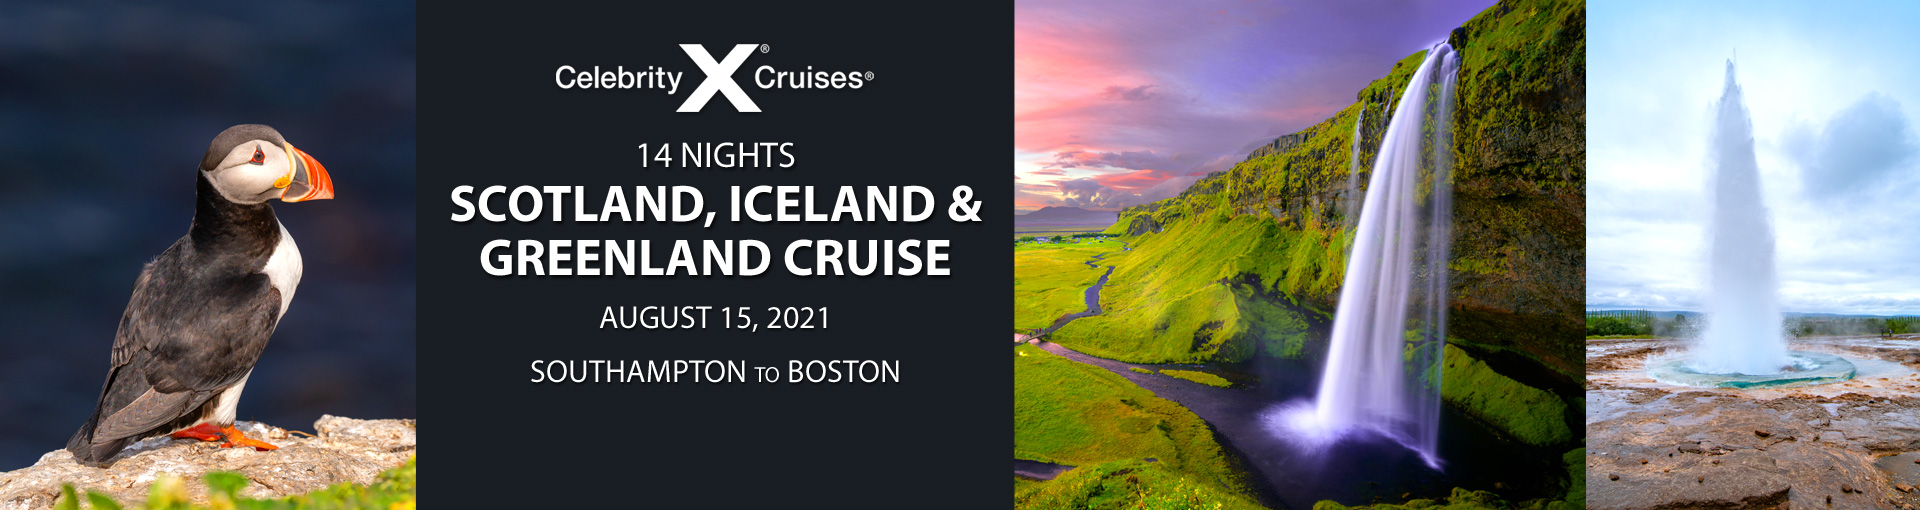 Celebrity Cruises: Exclusive offer for Iceland and Greenland cruise departing Aug 15, 2021